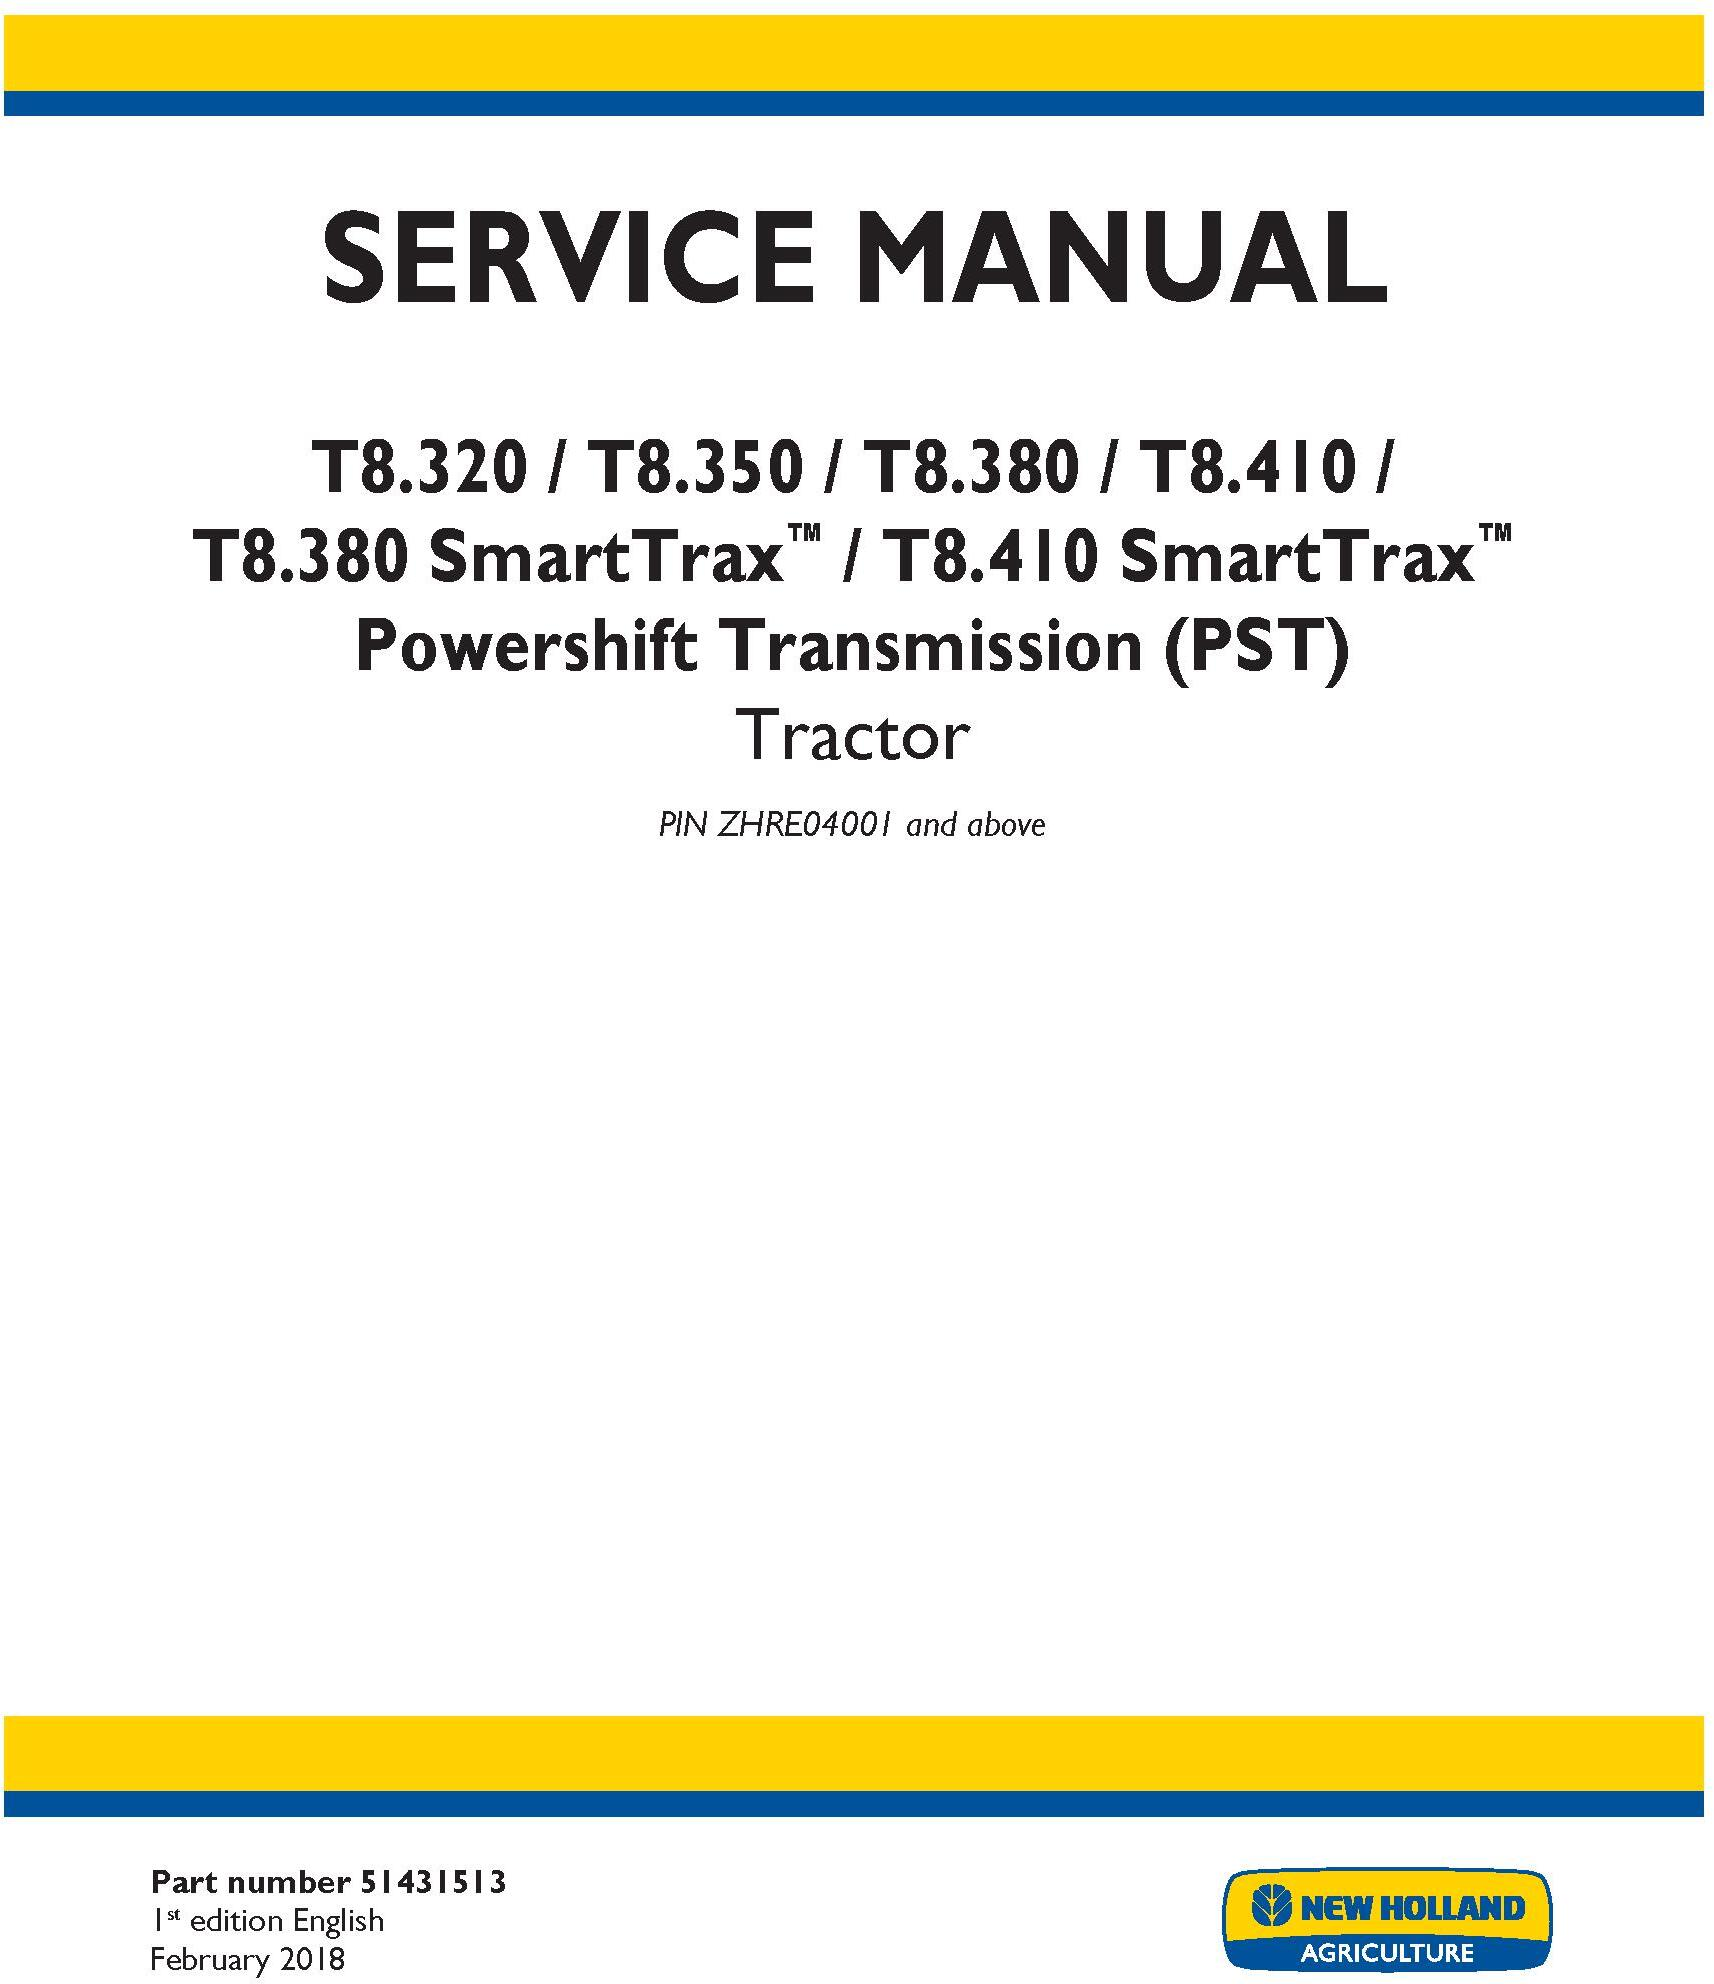 New Holland T8.320, T8.350, T8.380, T8.410 and SmartTrax PST Tractor Tier 4B Service Manual (USA) - 19513